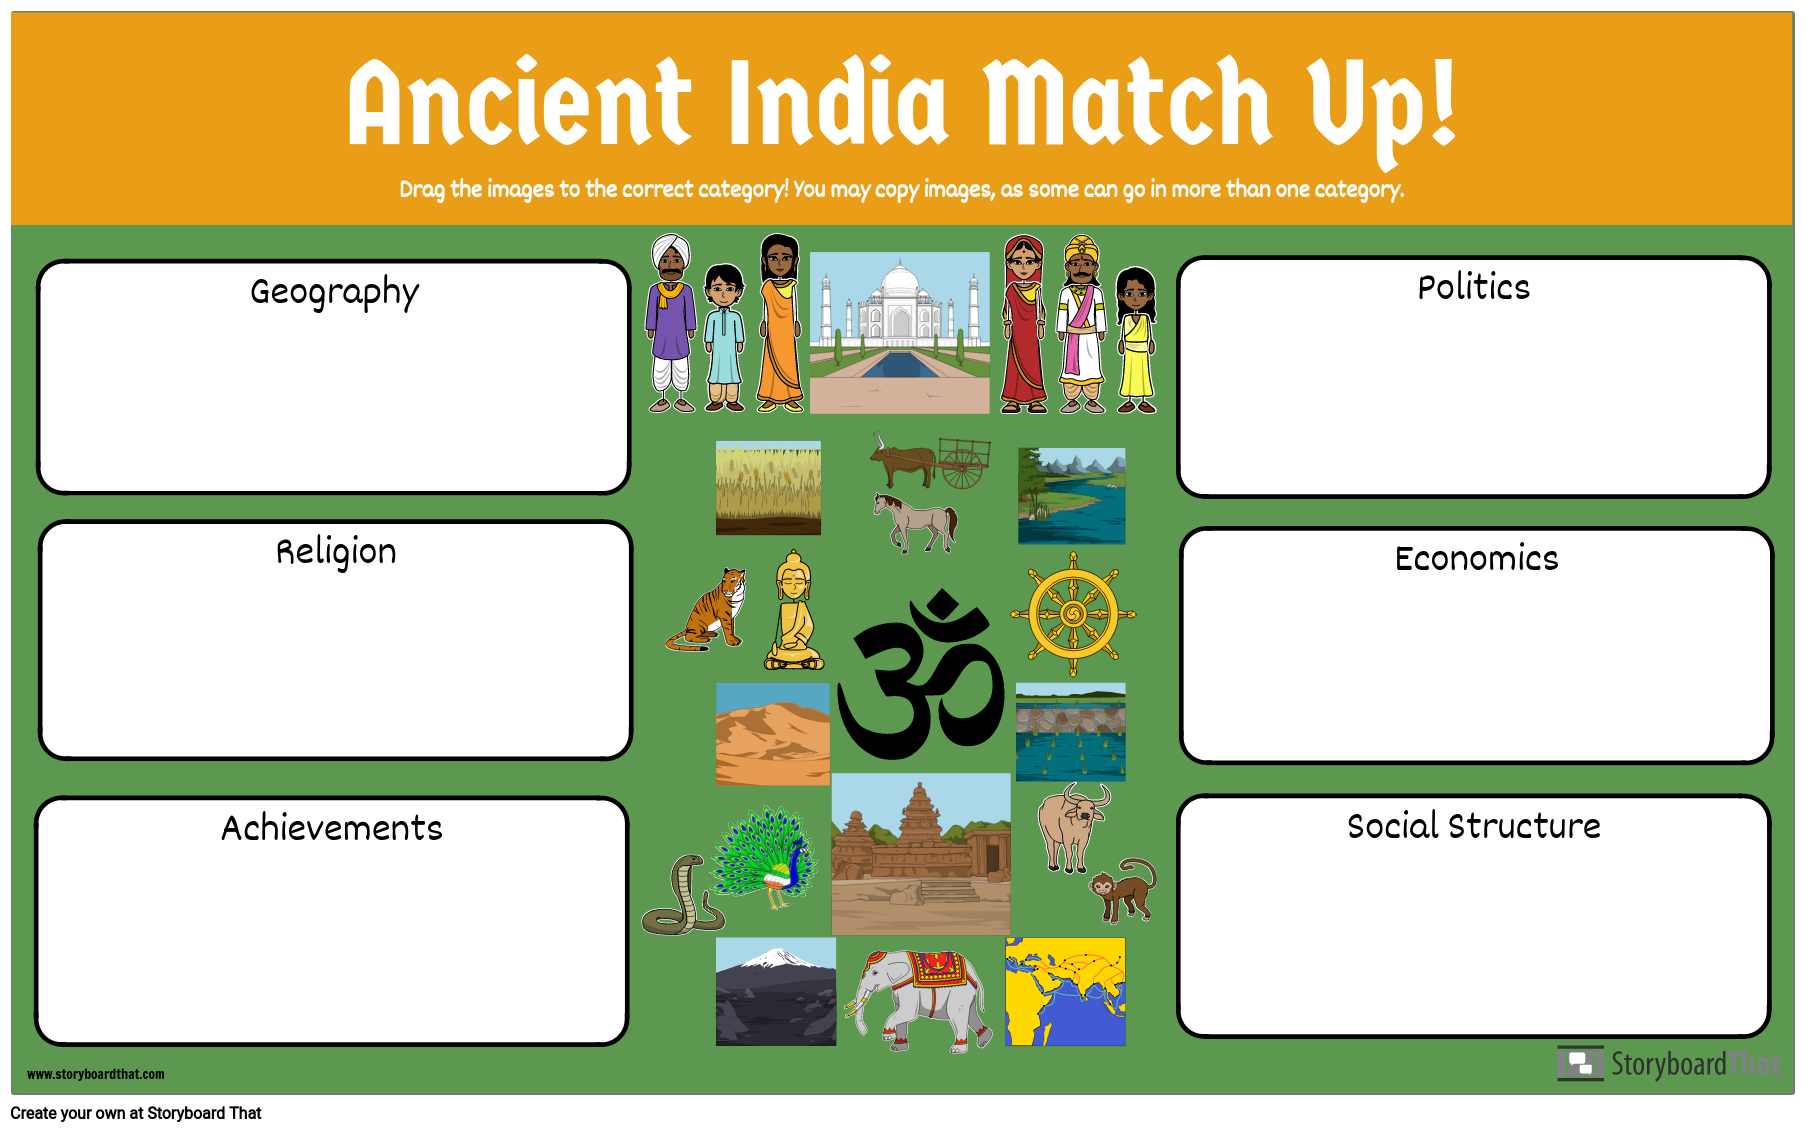 Ancient India Match Up